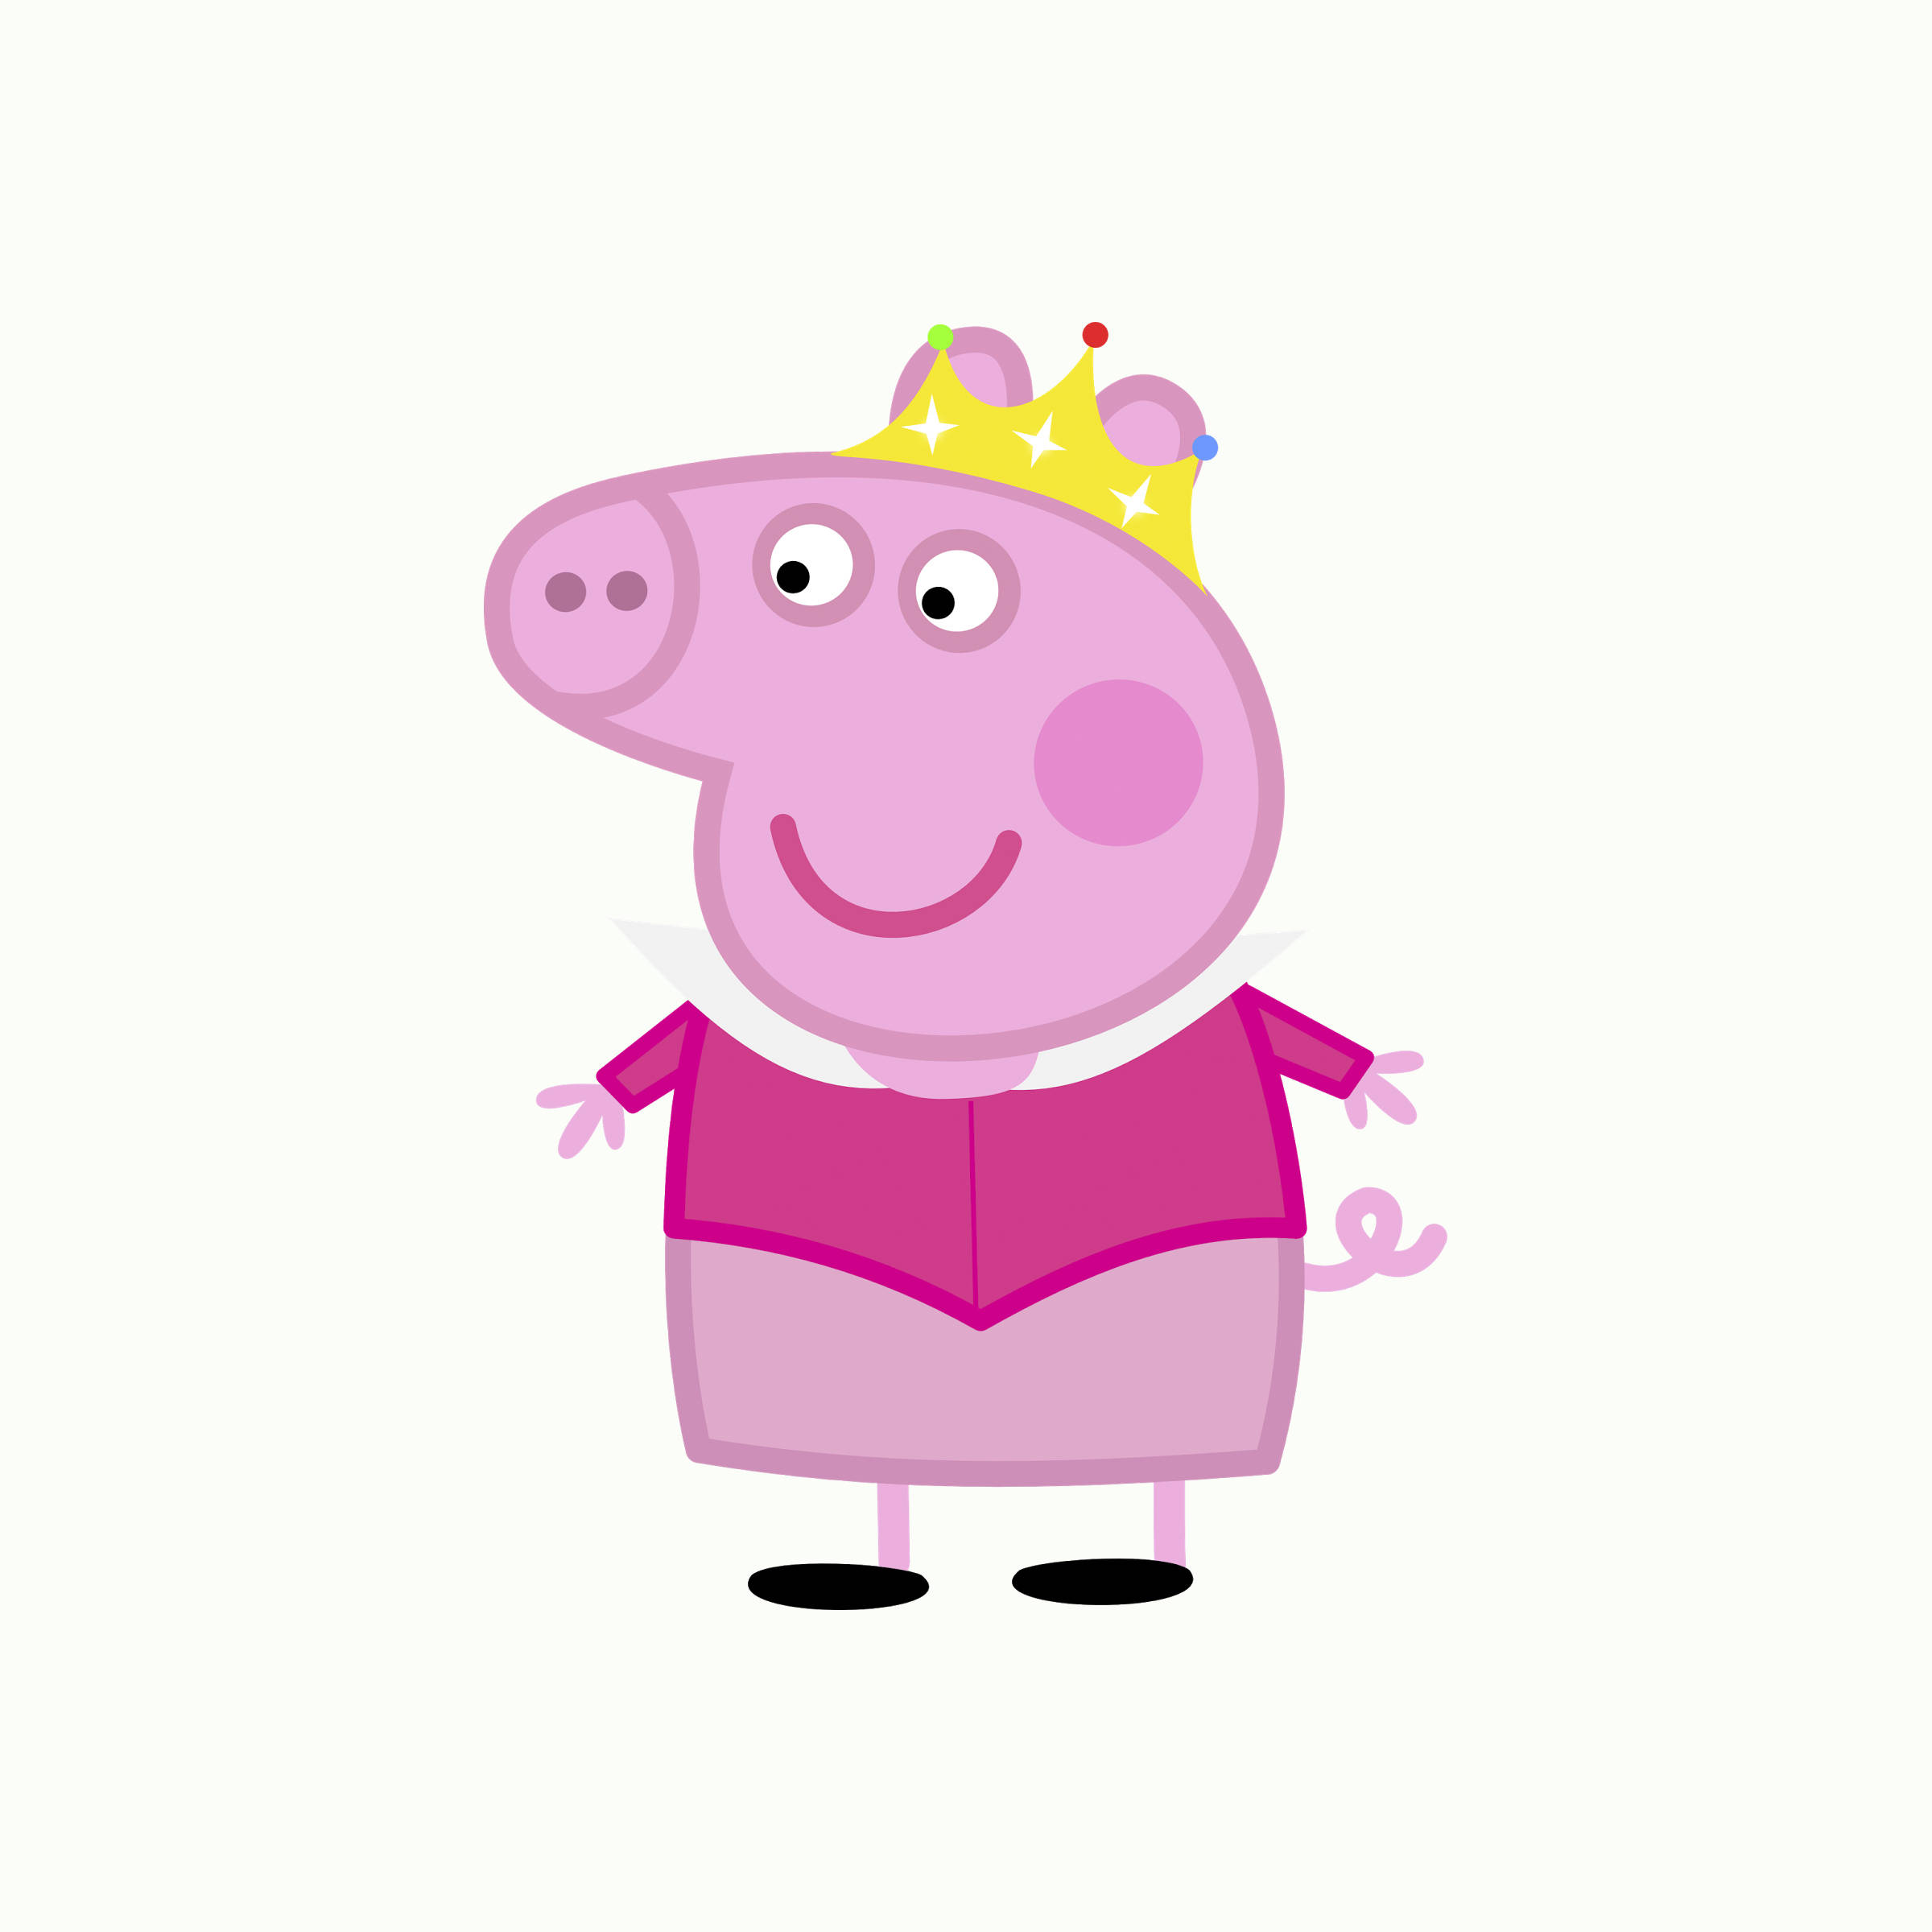 2400x2400 Peppa Pig Clip Art Nursery Decor Party Invitations